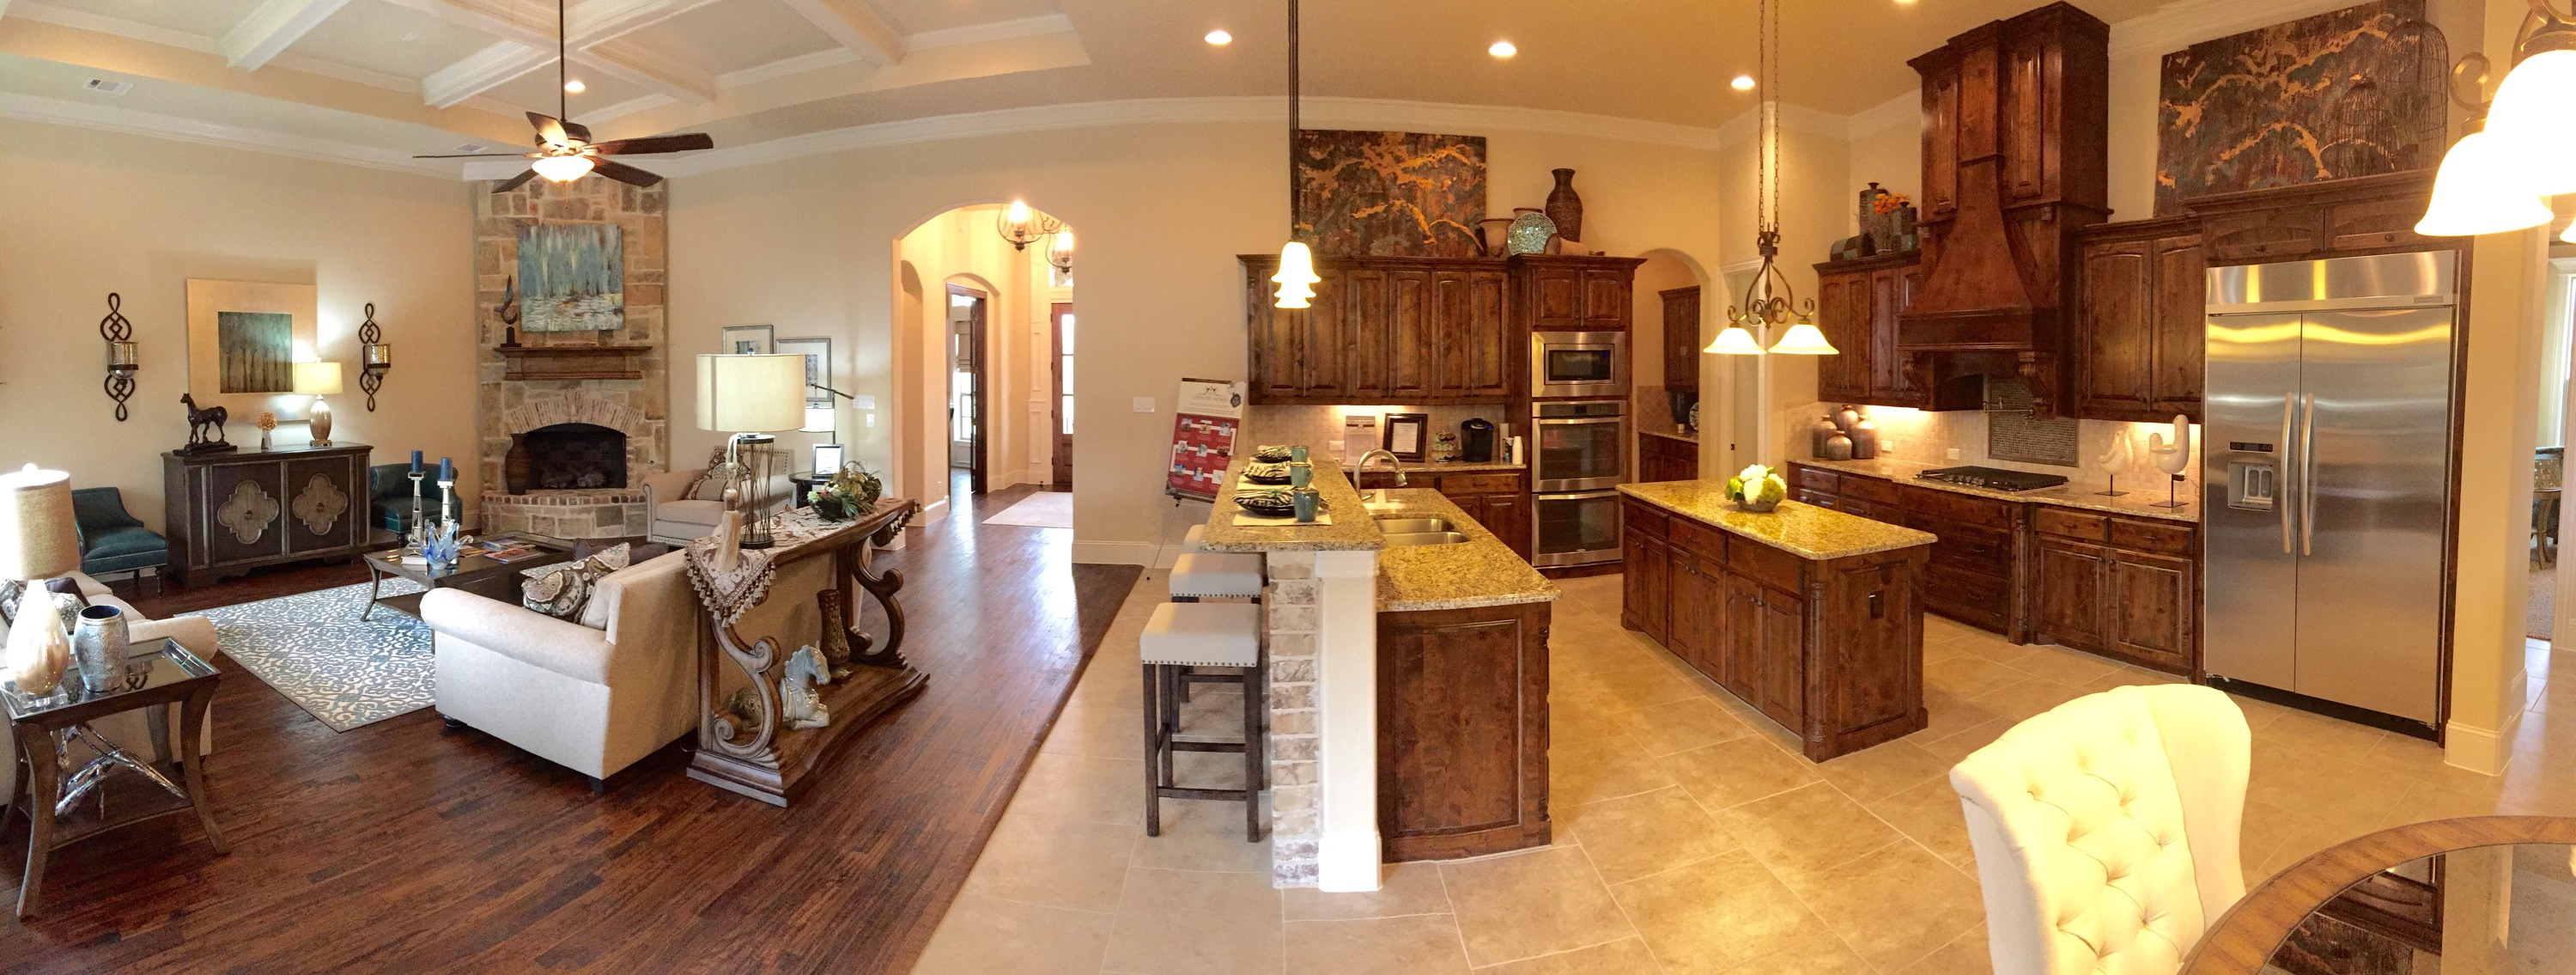 Our country homes at craig ranch in frisco isd is amazing for Custom country homes